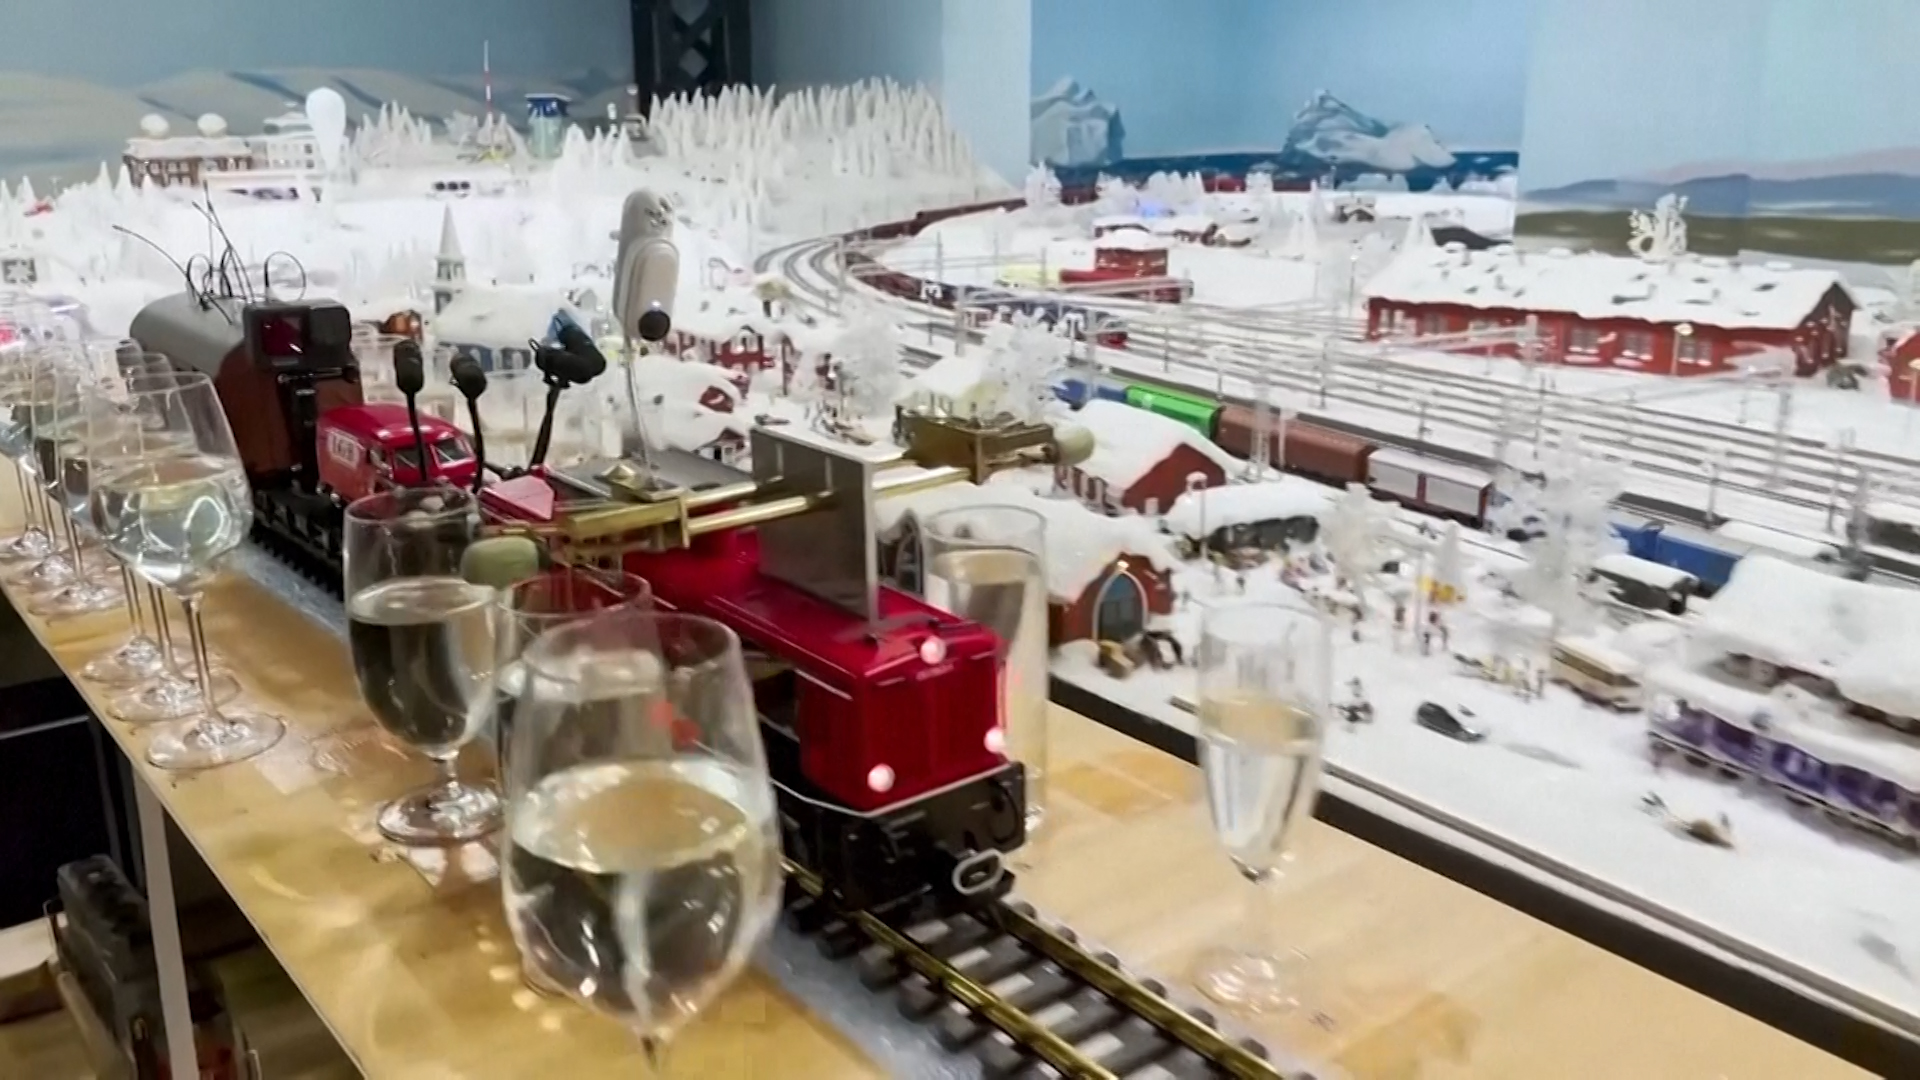 A World Record Music Medley.. by a model train!